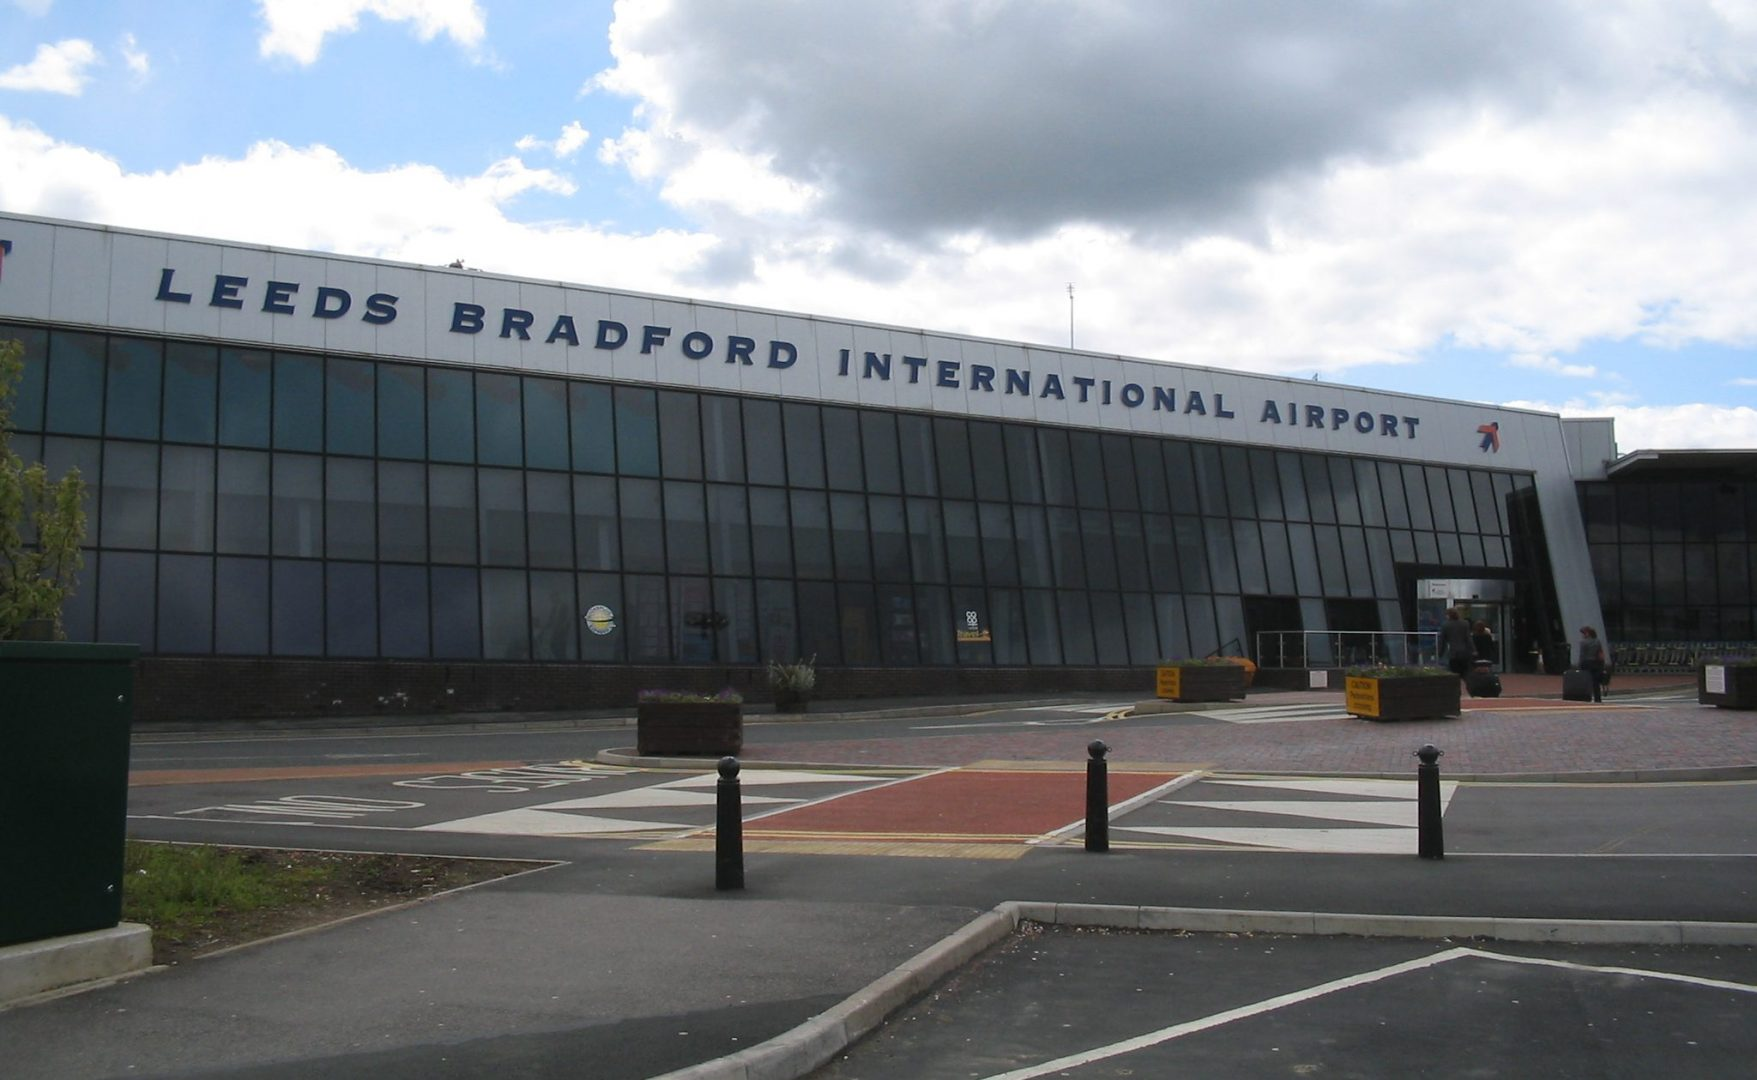 Airlines Operating From Leeds Bradford Airport Main